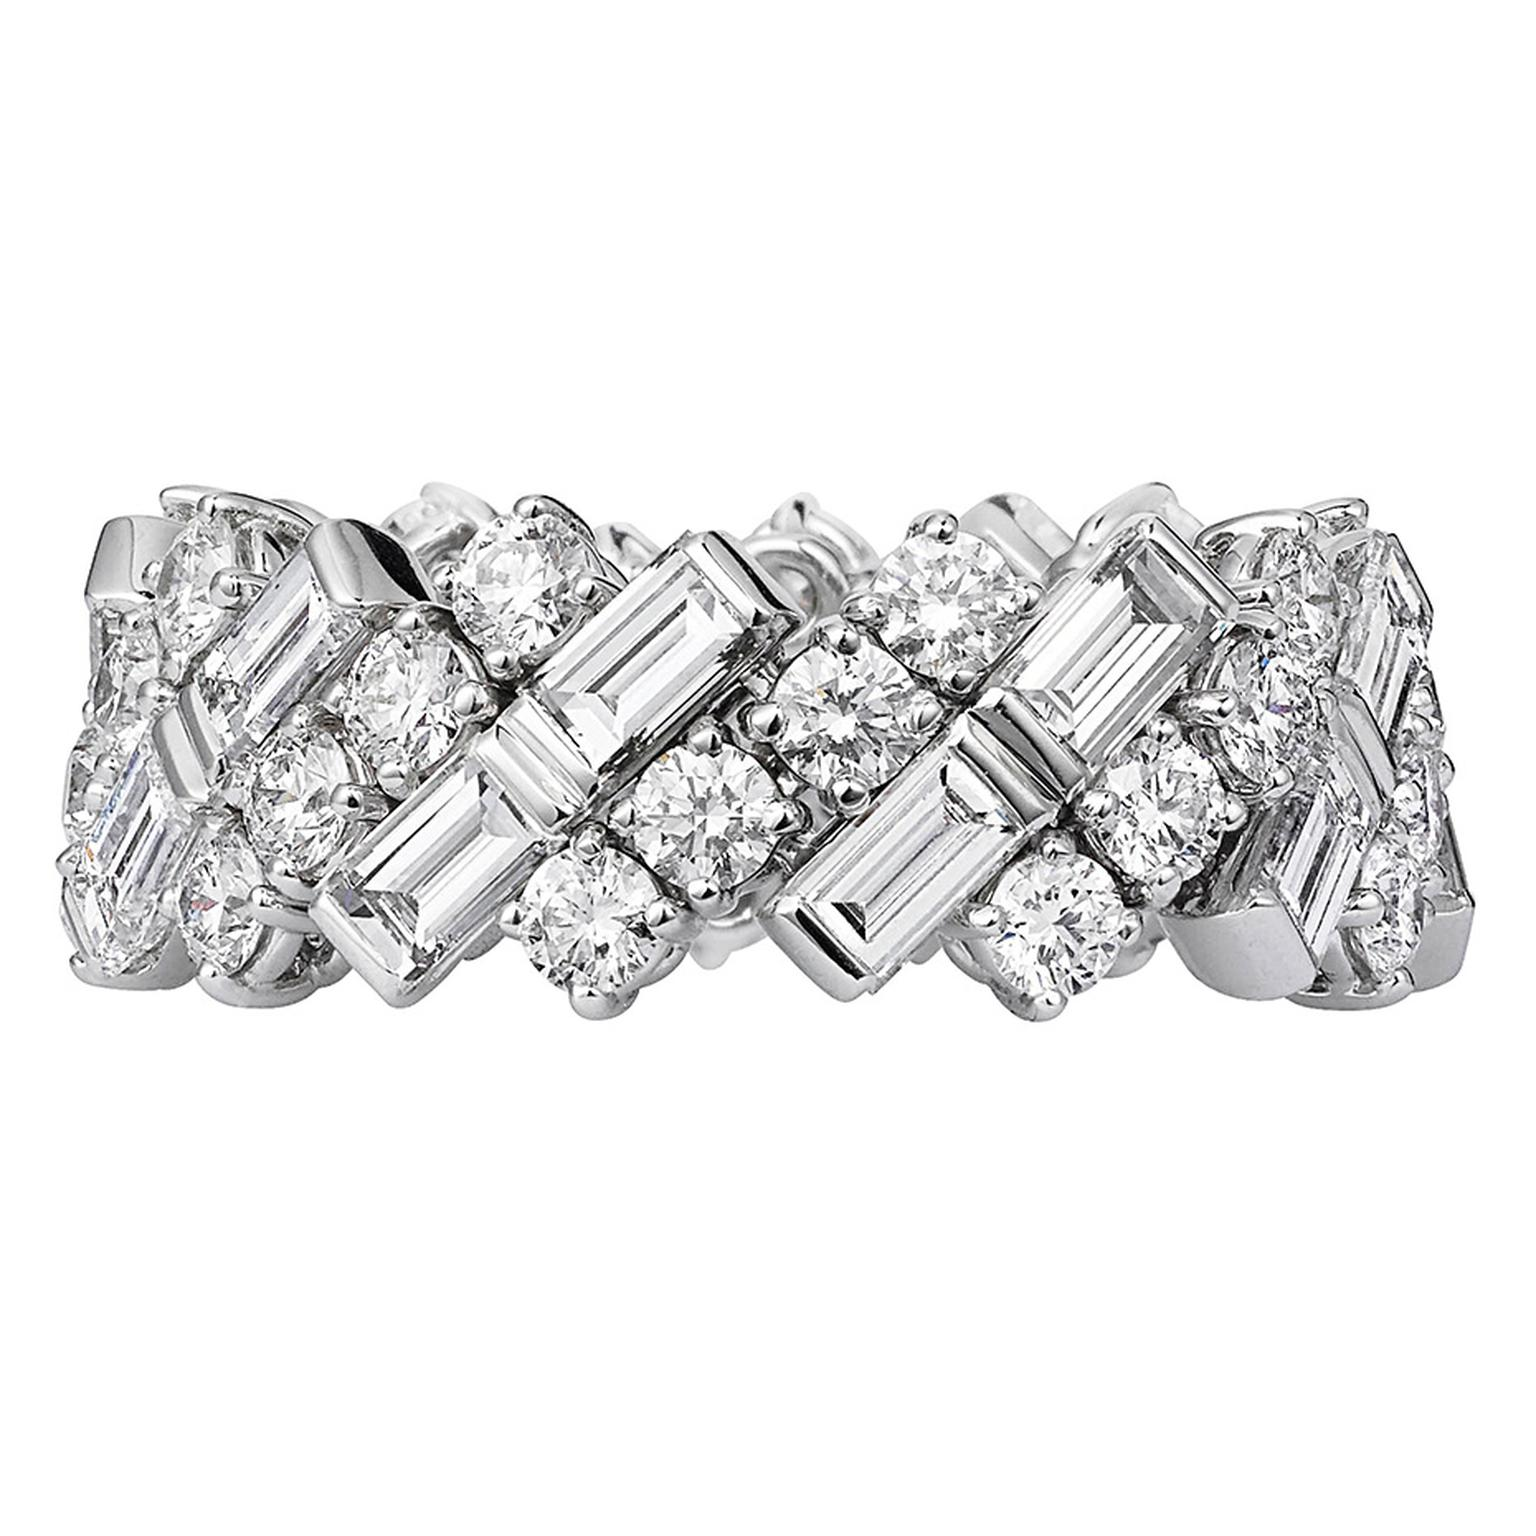 cartier creative wedding band in white gold and diamonds cartier wedding band Cartier white gold and diamond ring POA